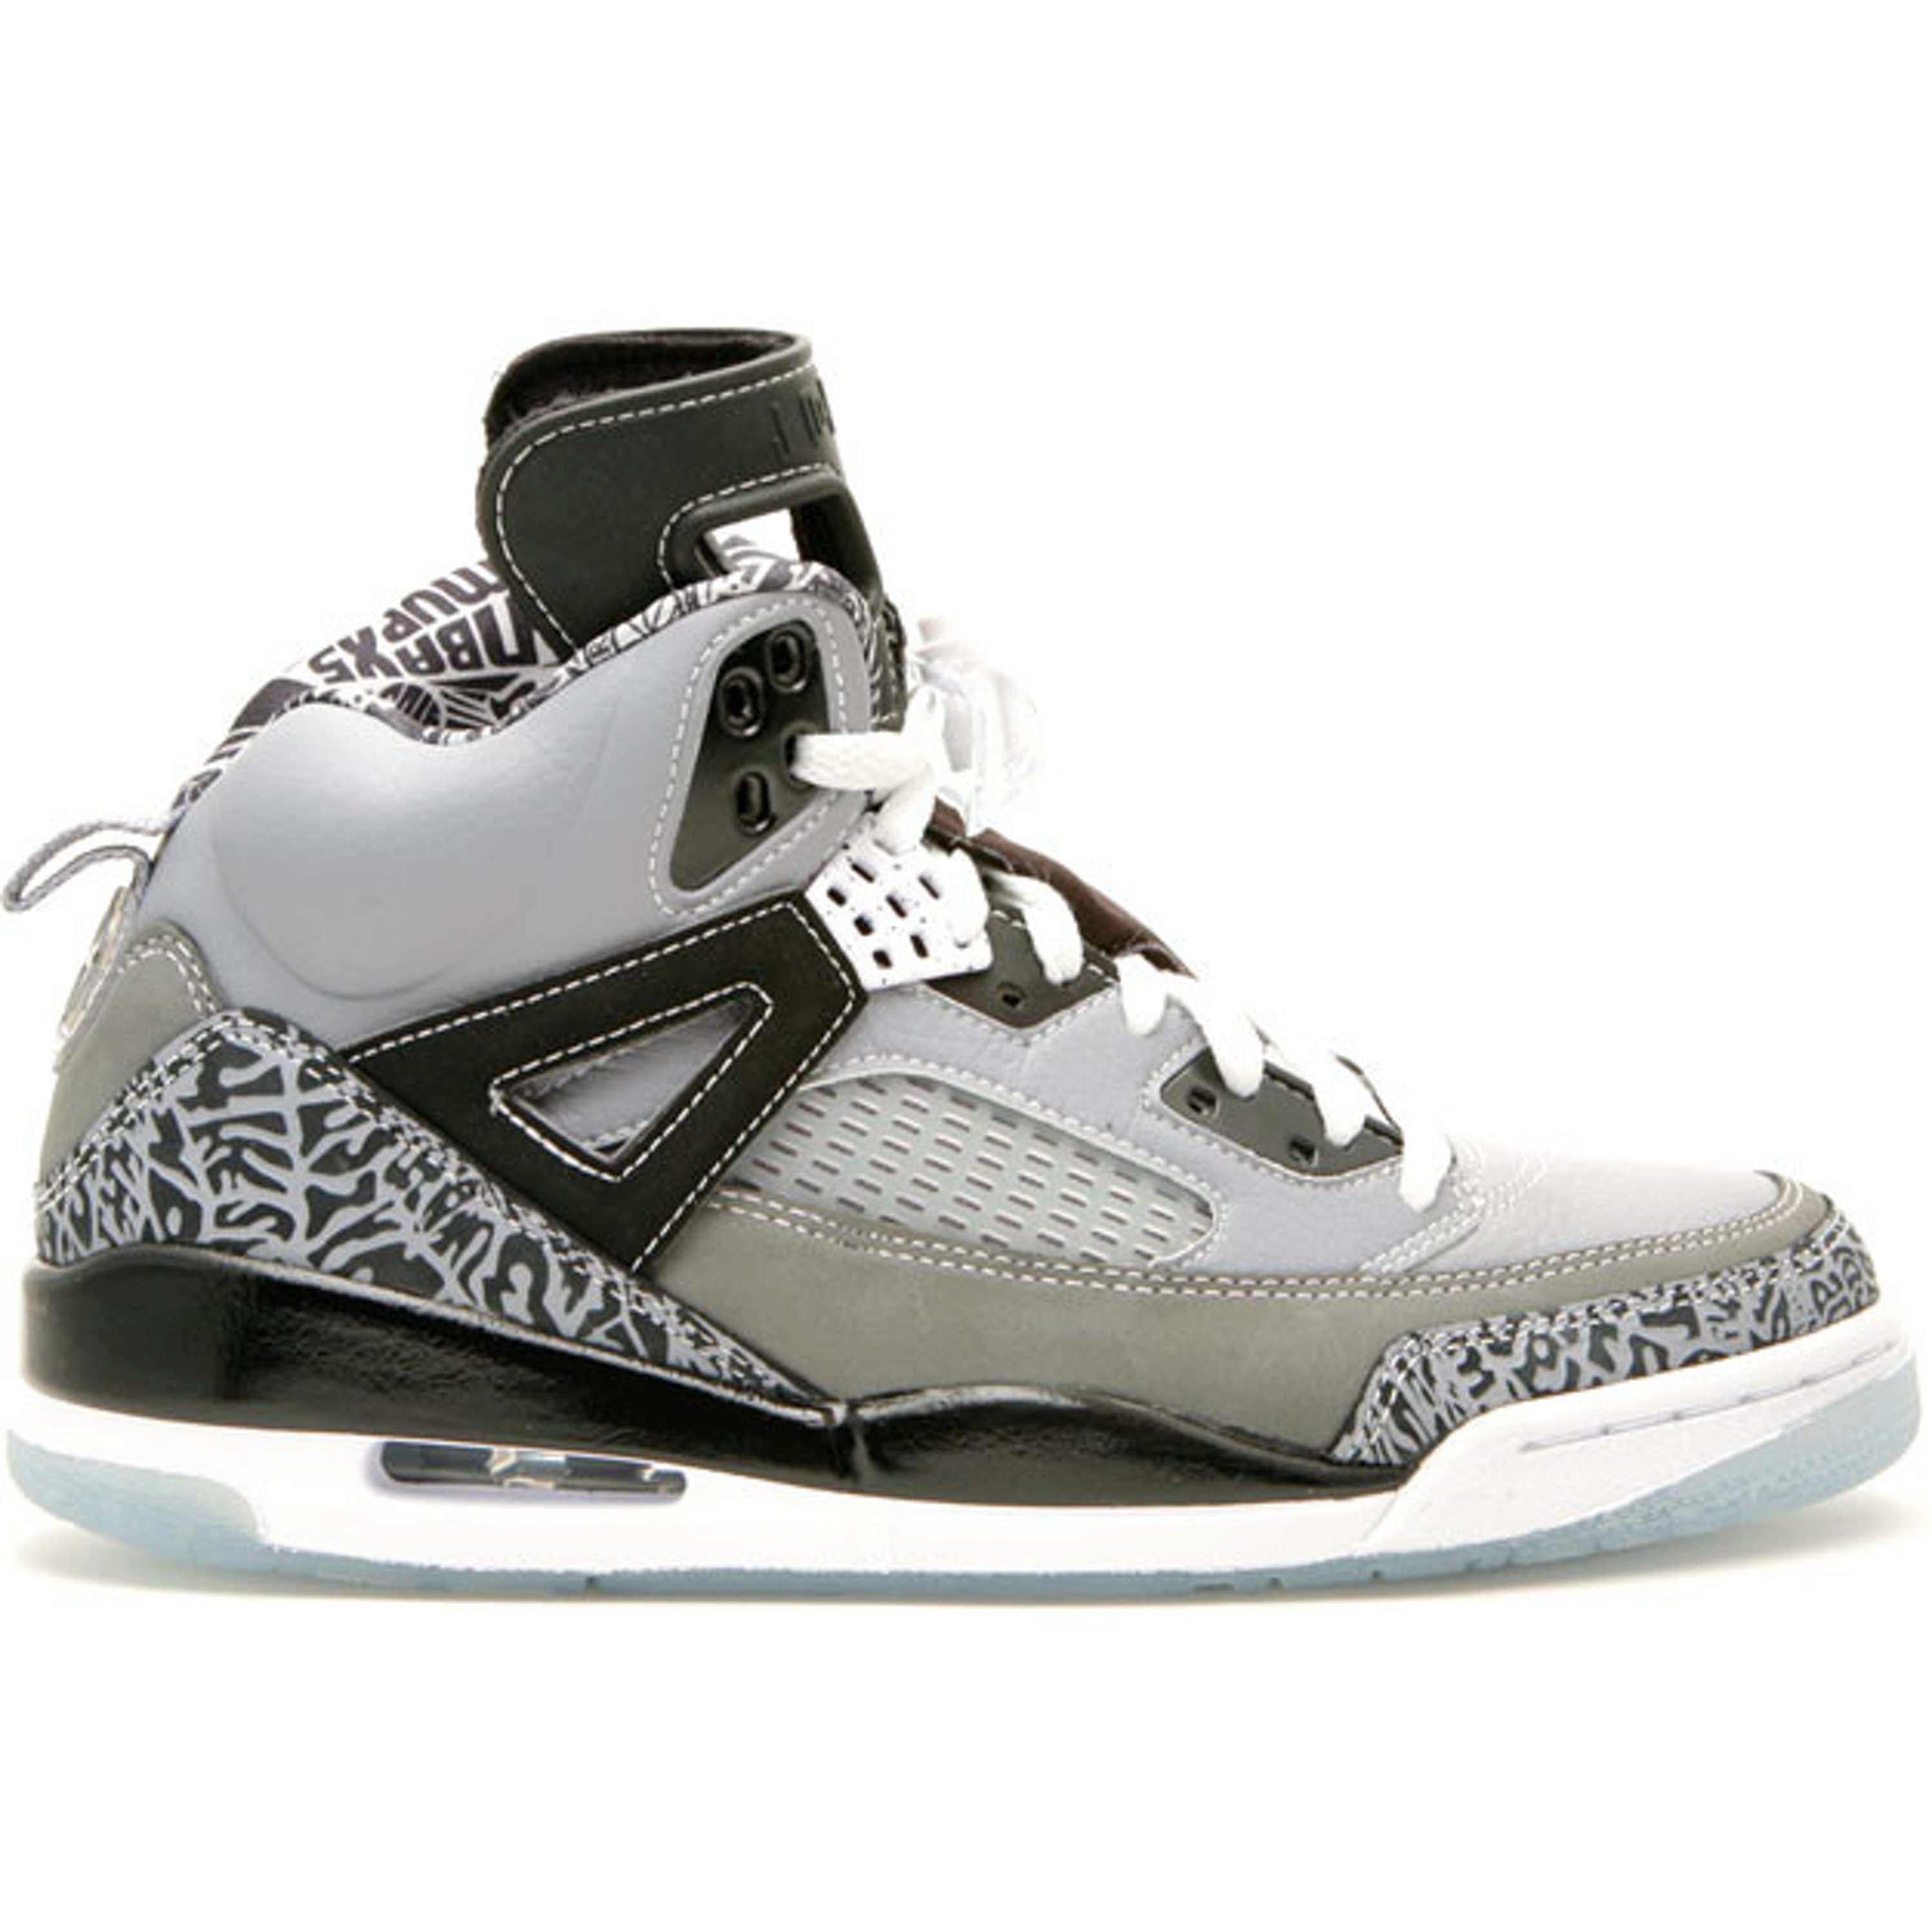 Jordan Spiz'ike Cool Grey (315371-091)